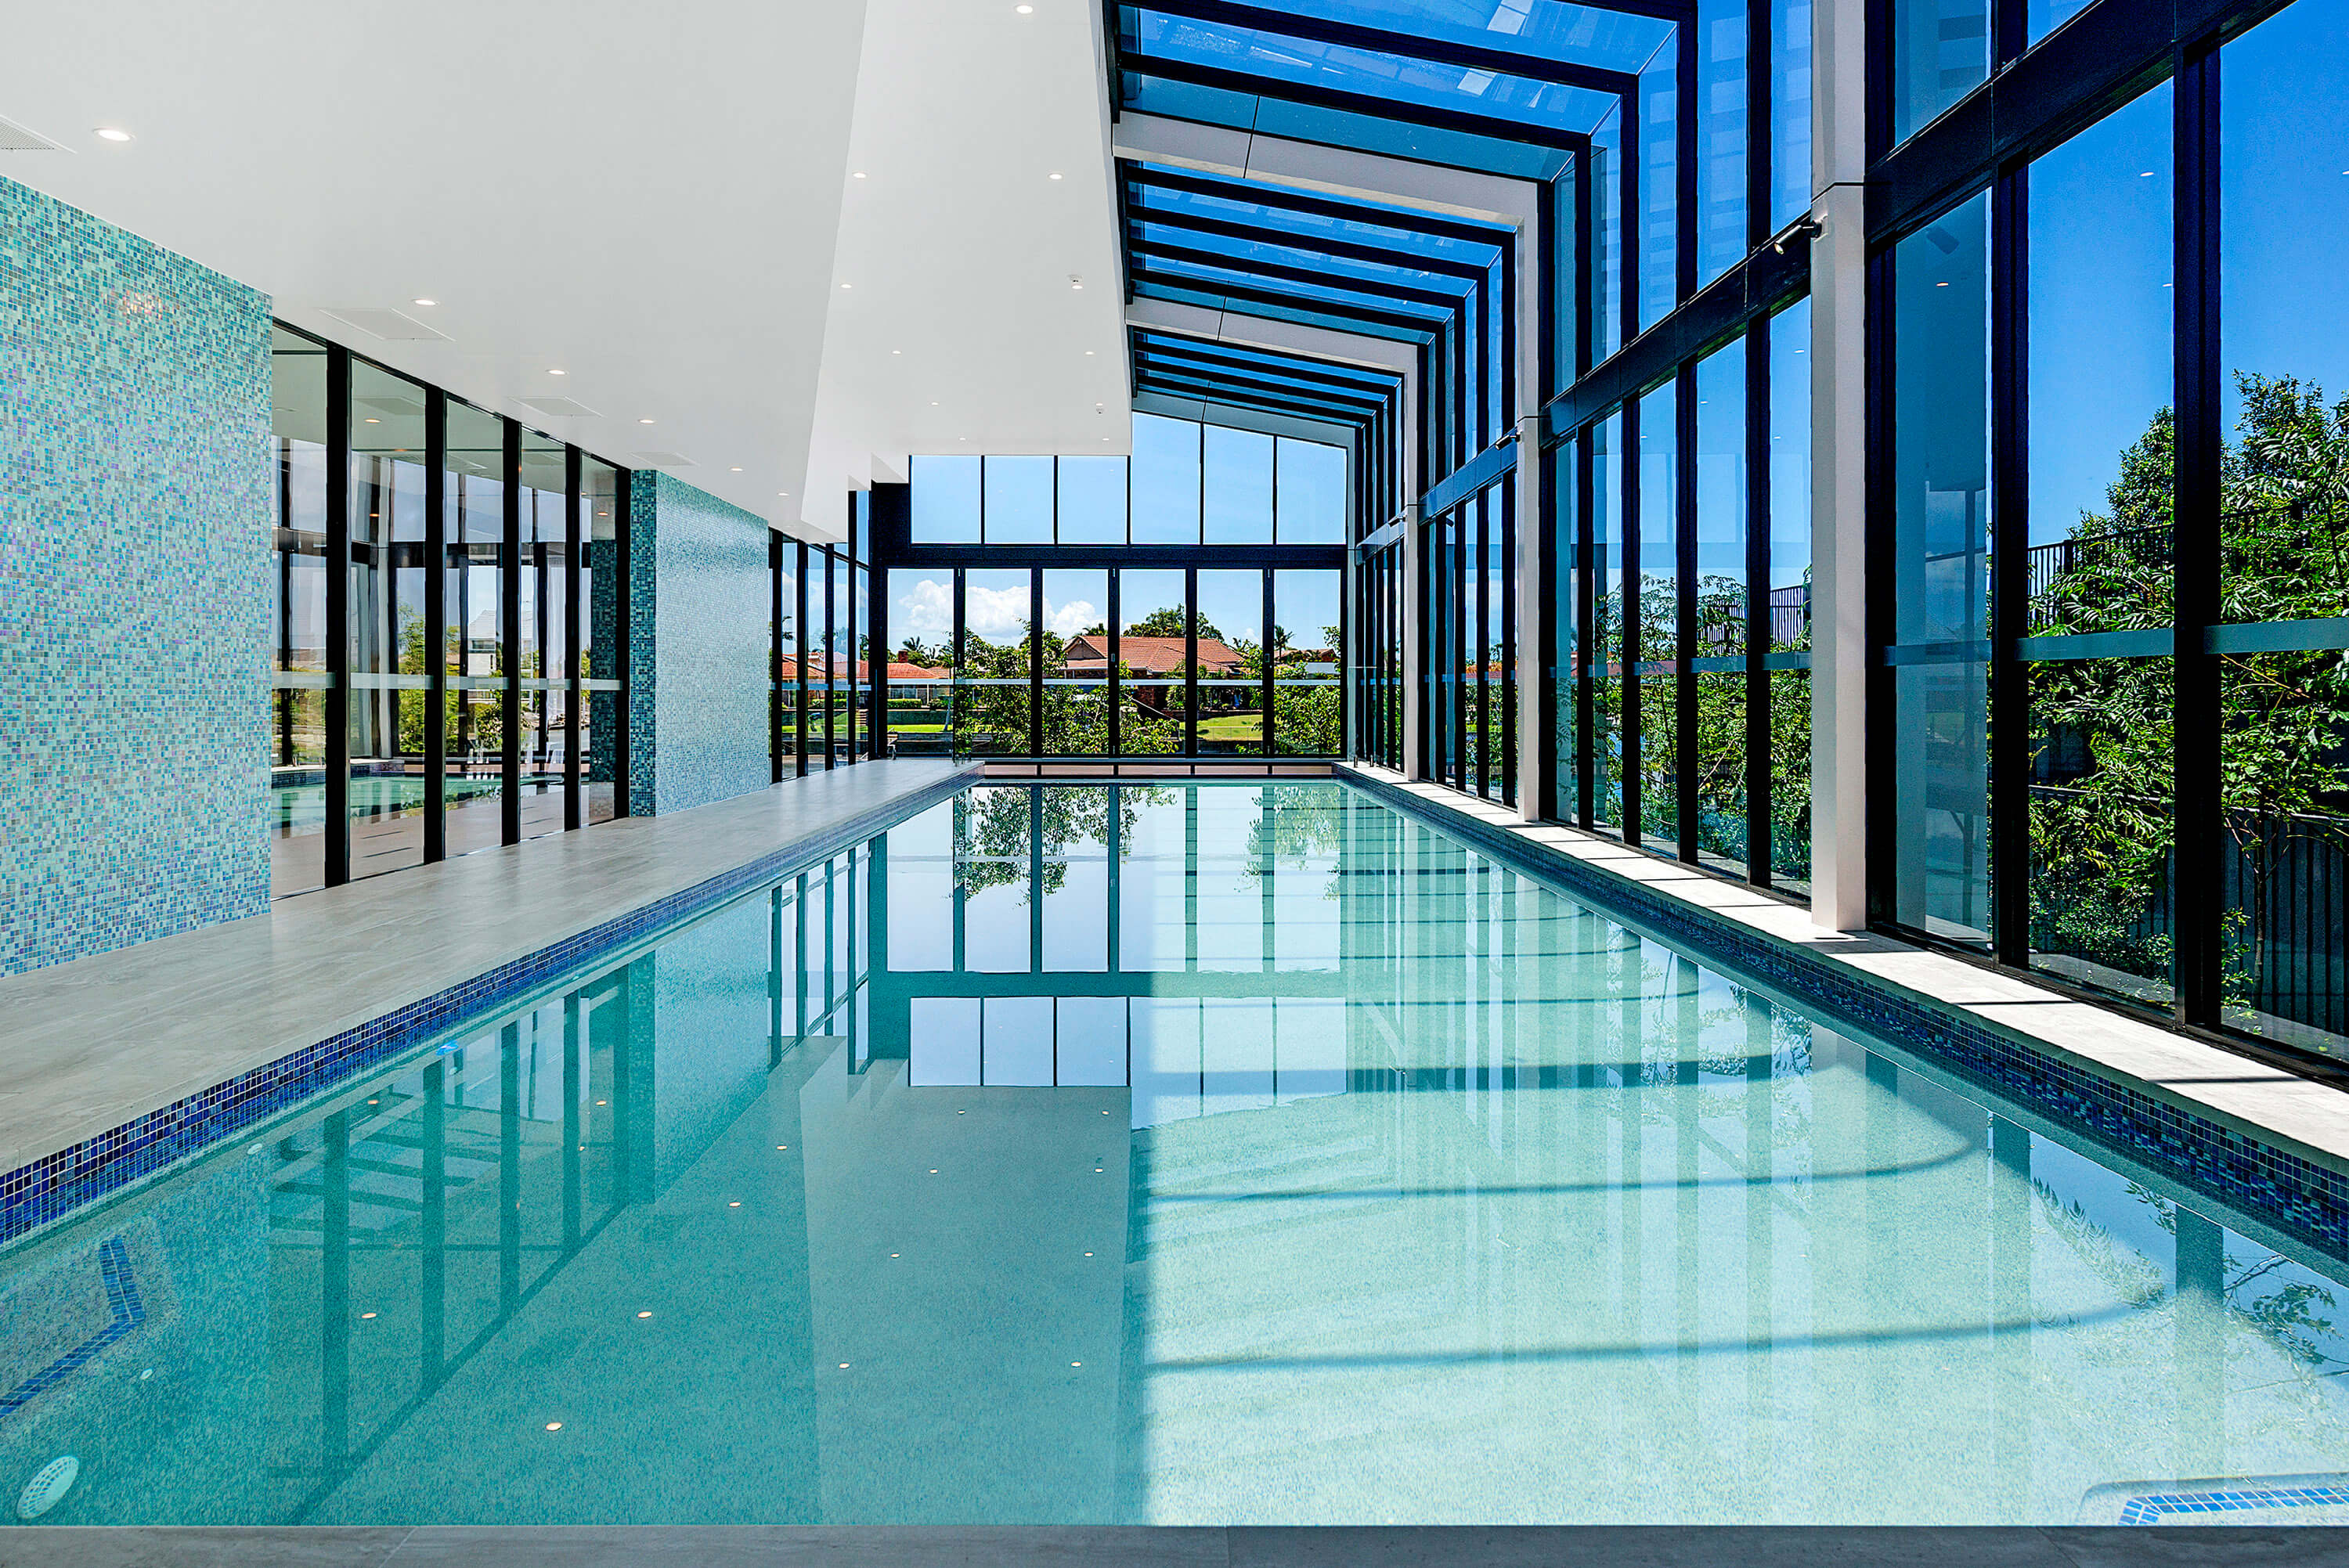 Resident access to gym, indoor and outdoor pool, sauna, pilates room, cinema room and lounge, additional outdoor venues such as parkland and BBQ areas.